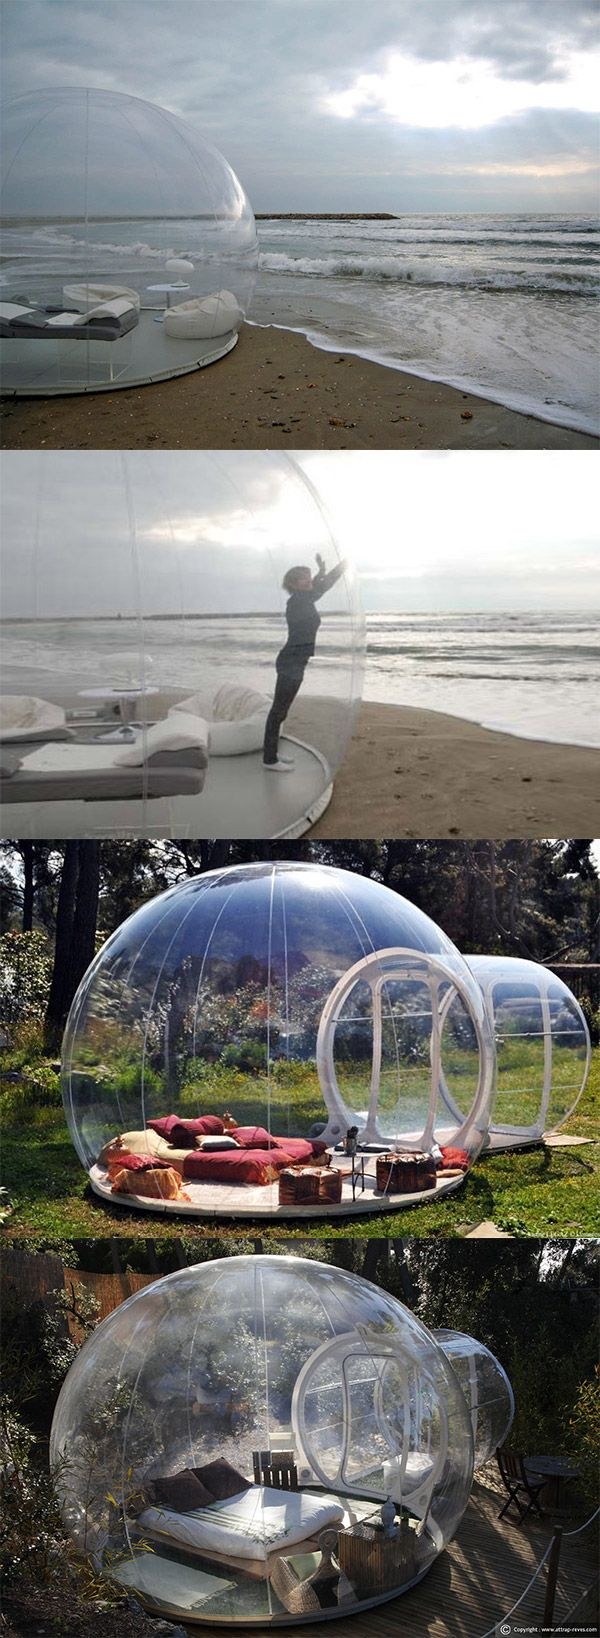 This bubble tent lets you sleep under the stars! #lifeslittlemoments